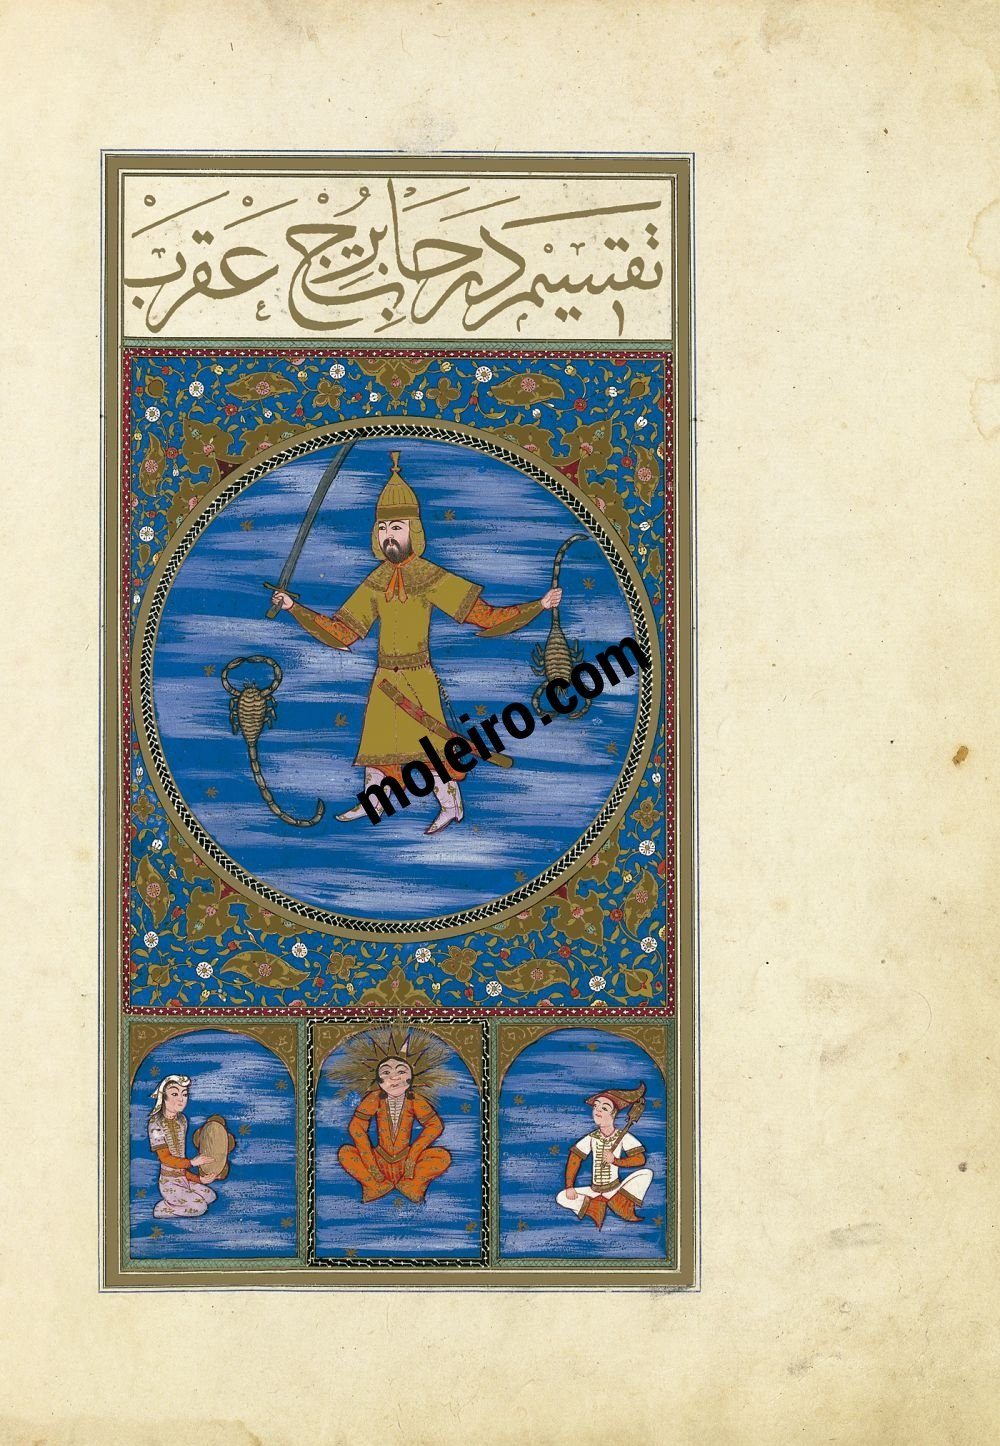 The Book of Felicity f.22v, The Image of Scorpio